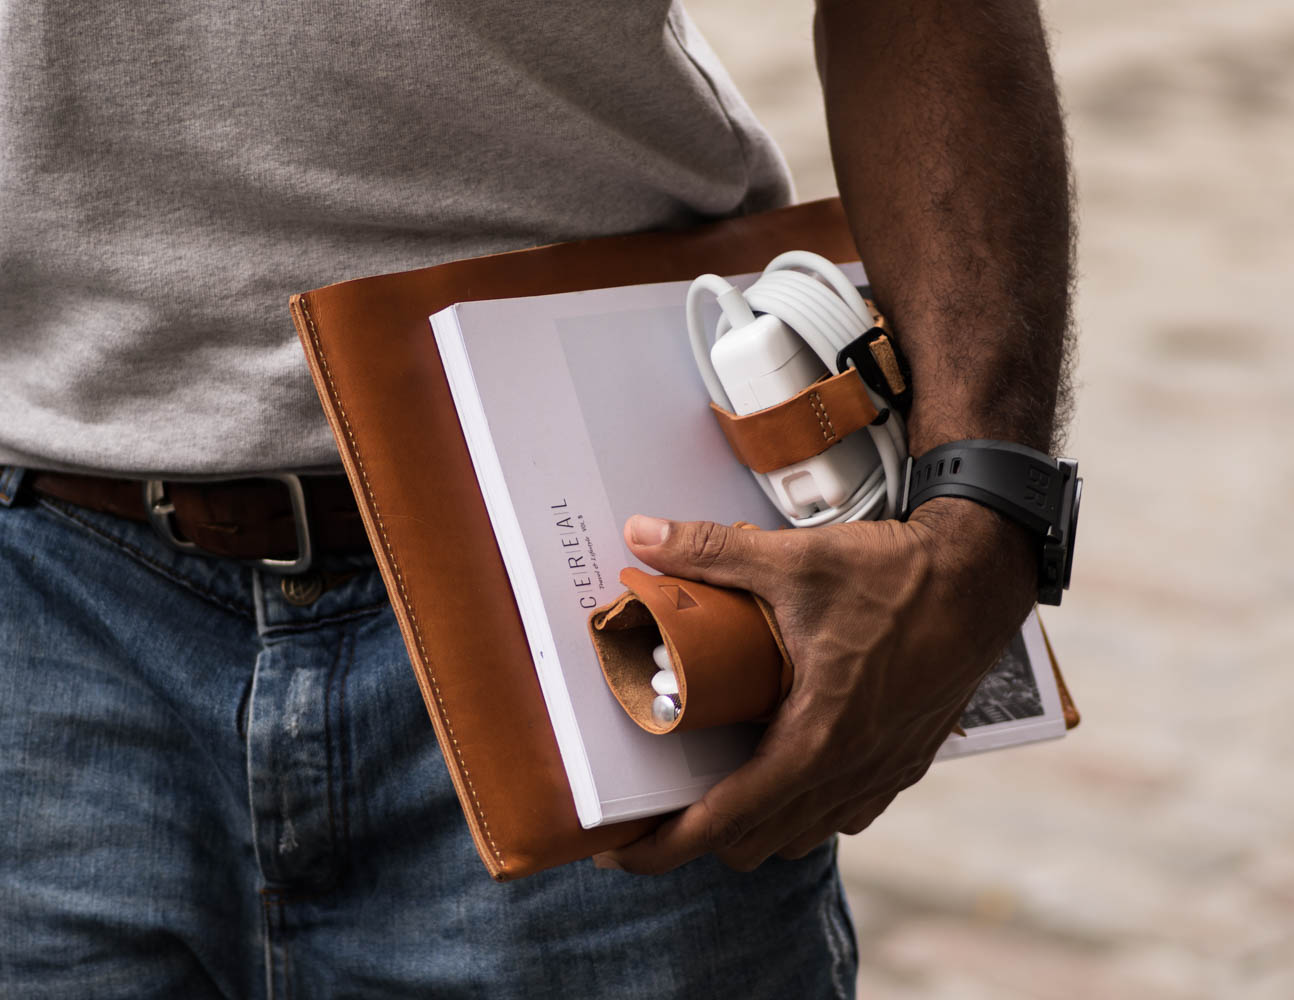 Brace - Beautiful Leather Accessories For Life On The Go » Gadget Flow